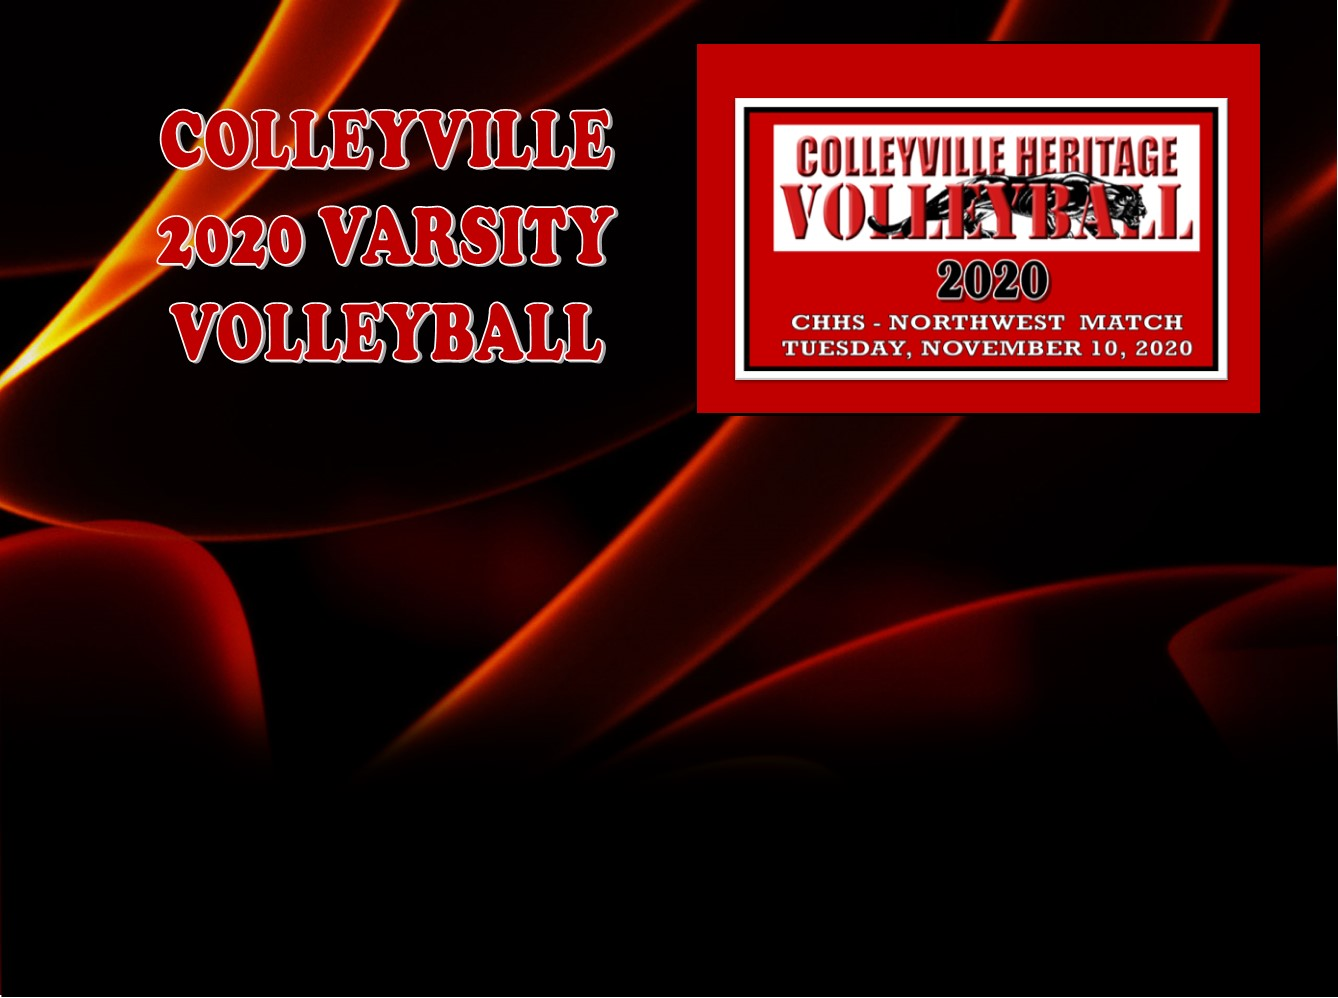 GCISD Volleyball: Colleyville Lady Panthers Loss to Northwest Lady Texans 3-0